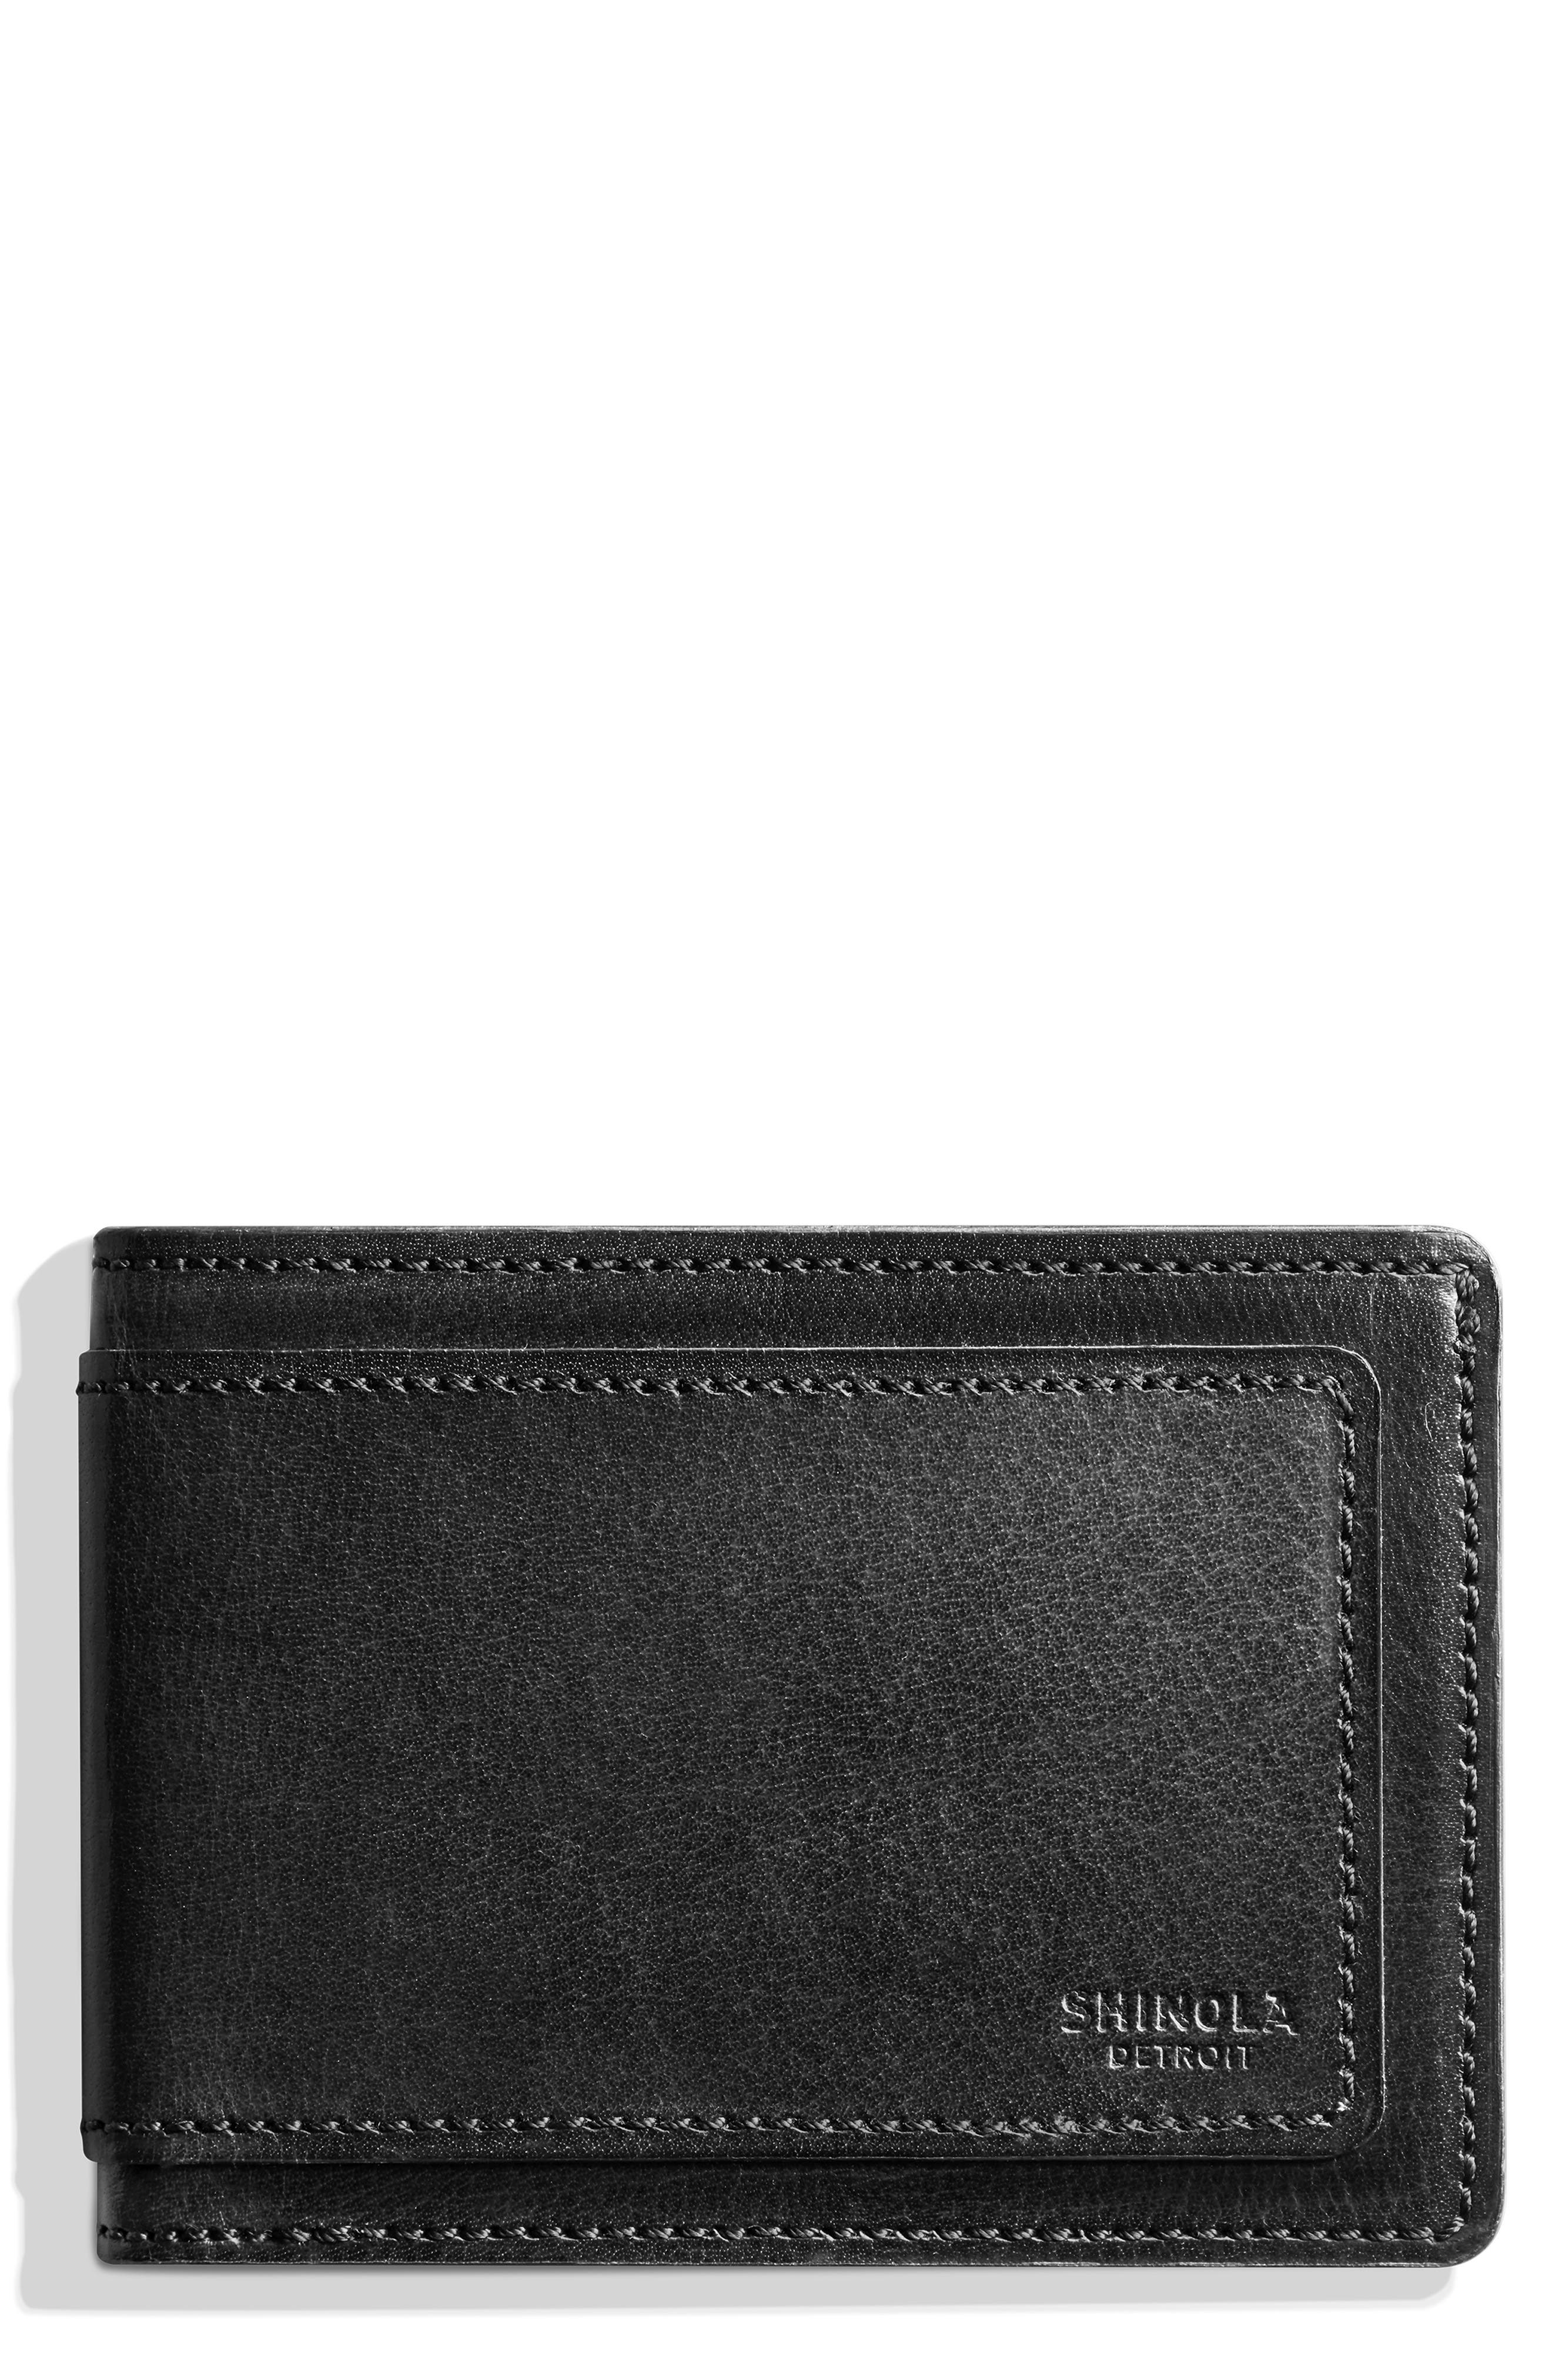 Outlaw Wallet,                             Main thumbnail 1, color,                             BLACK